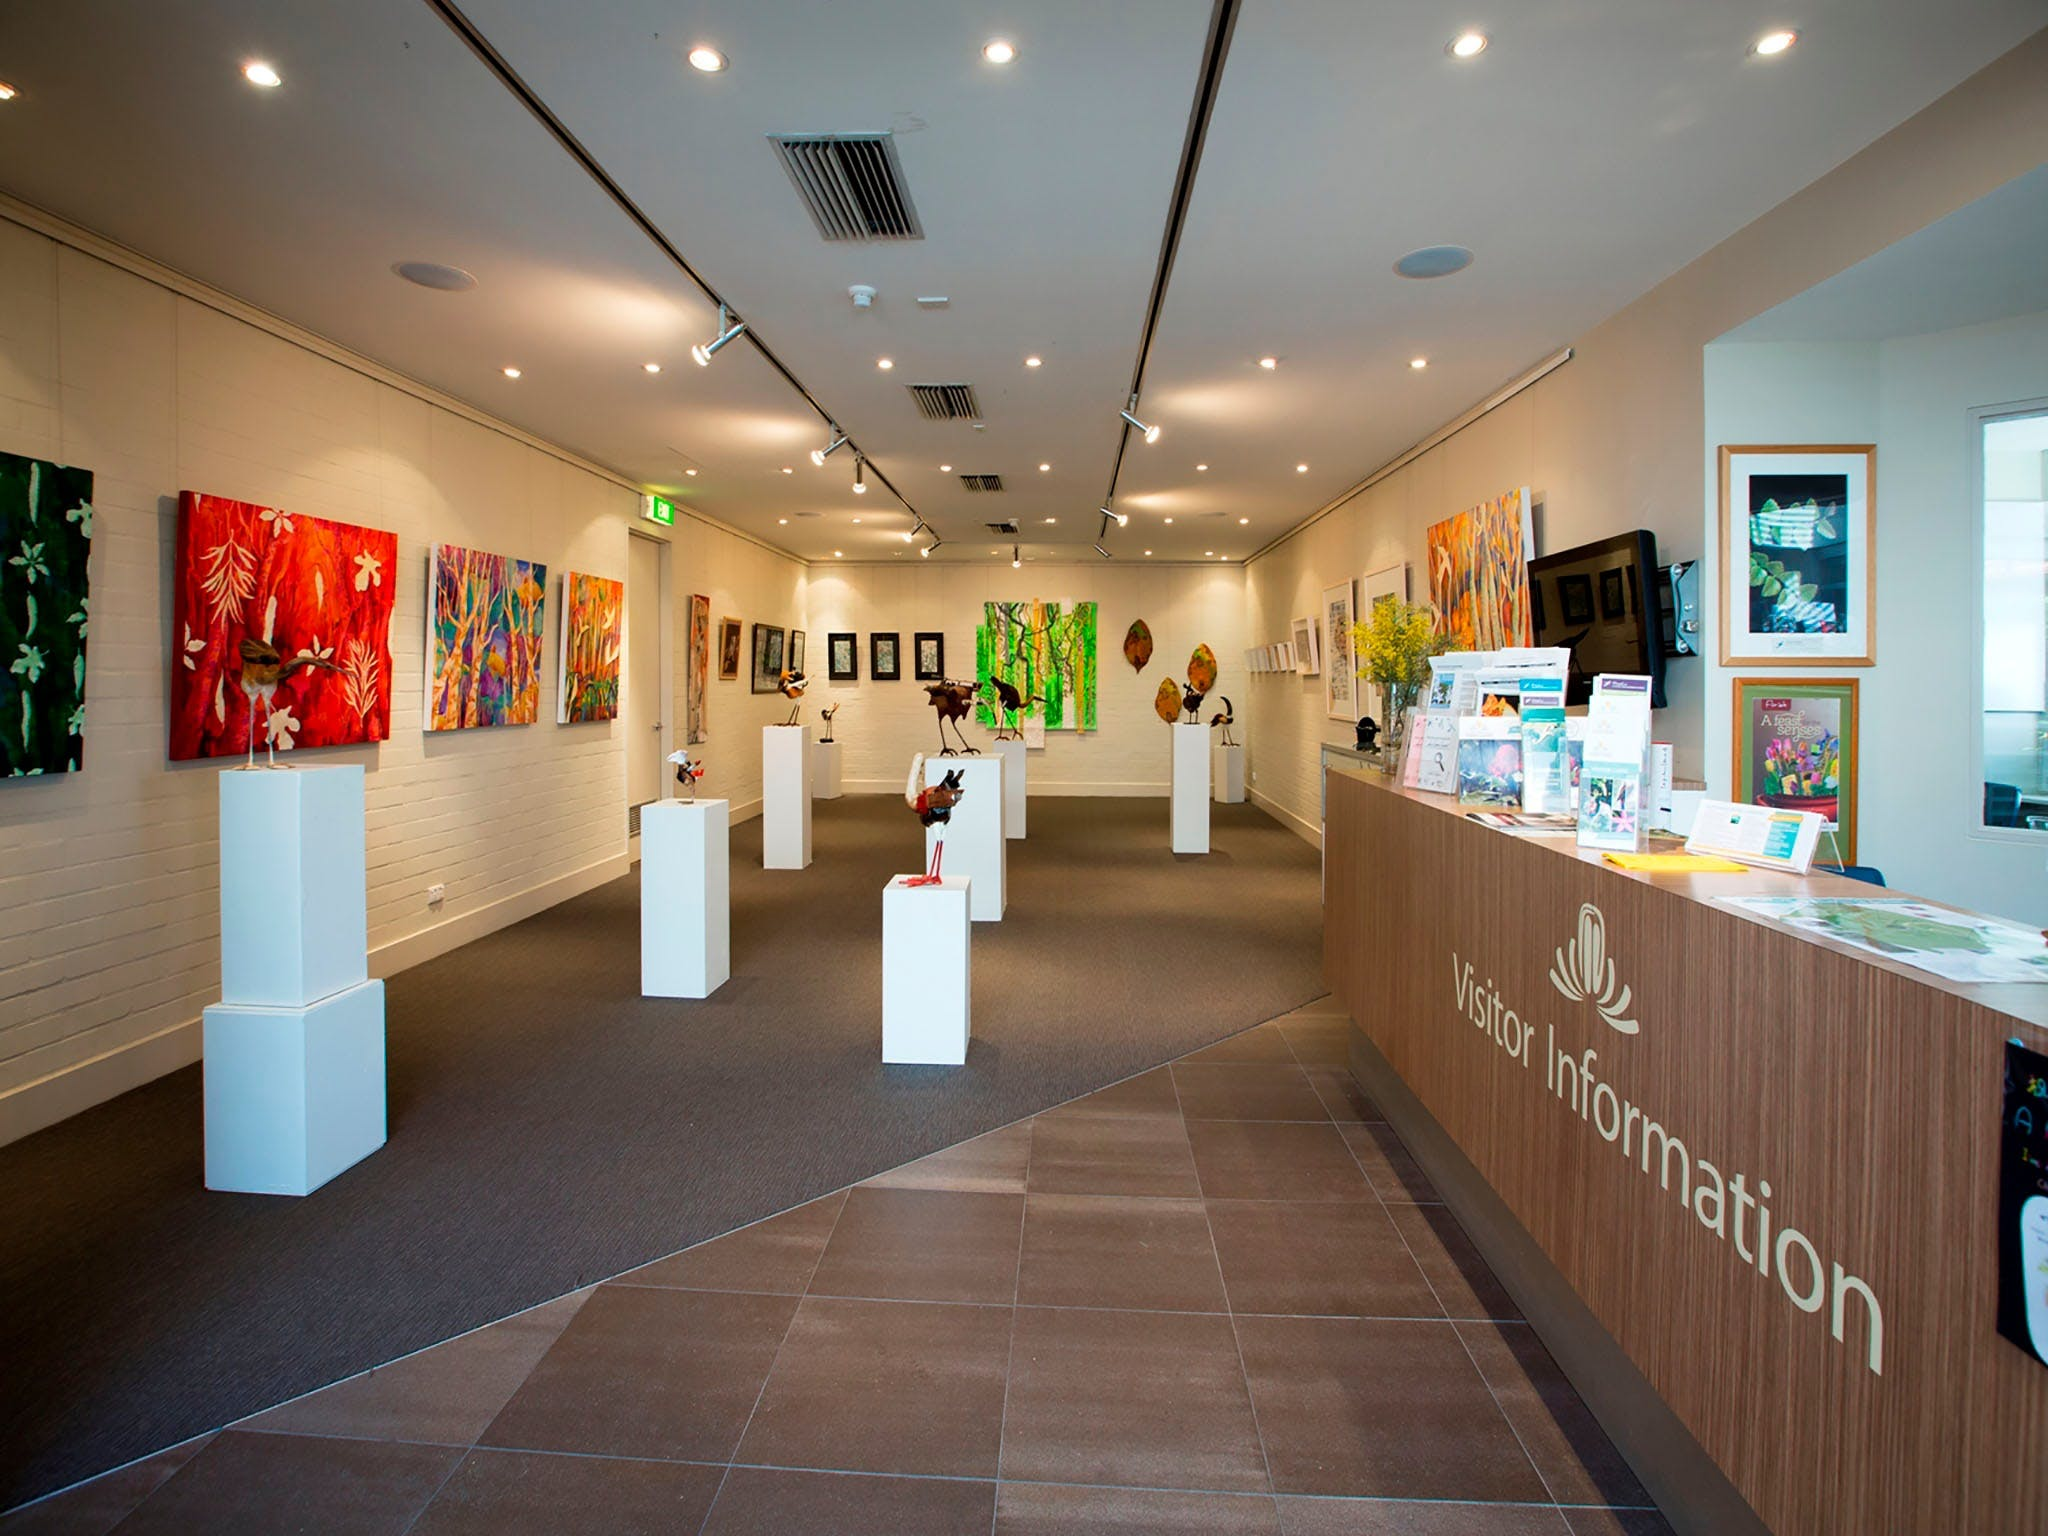 Australian National Botanic Gardens Visitor Centre Gallery - Accommodation Melbourne